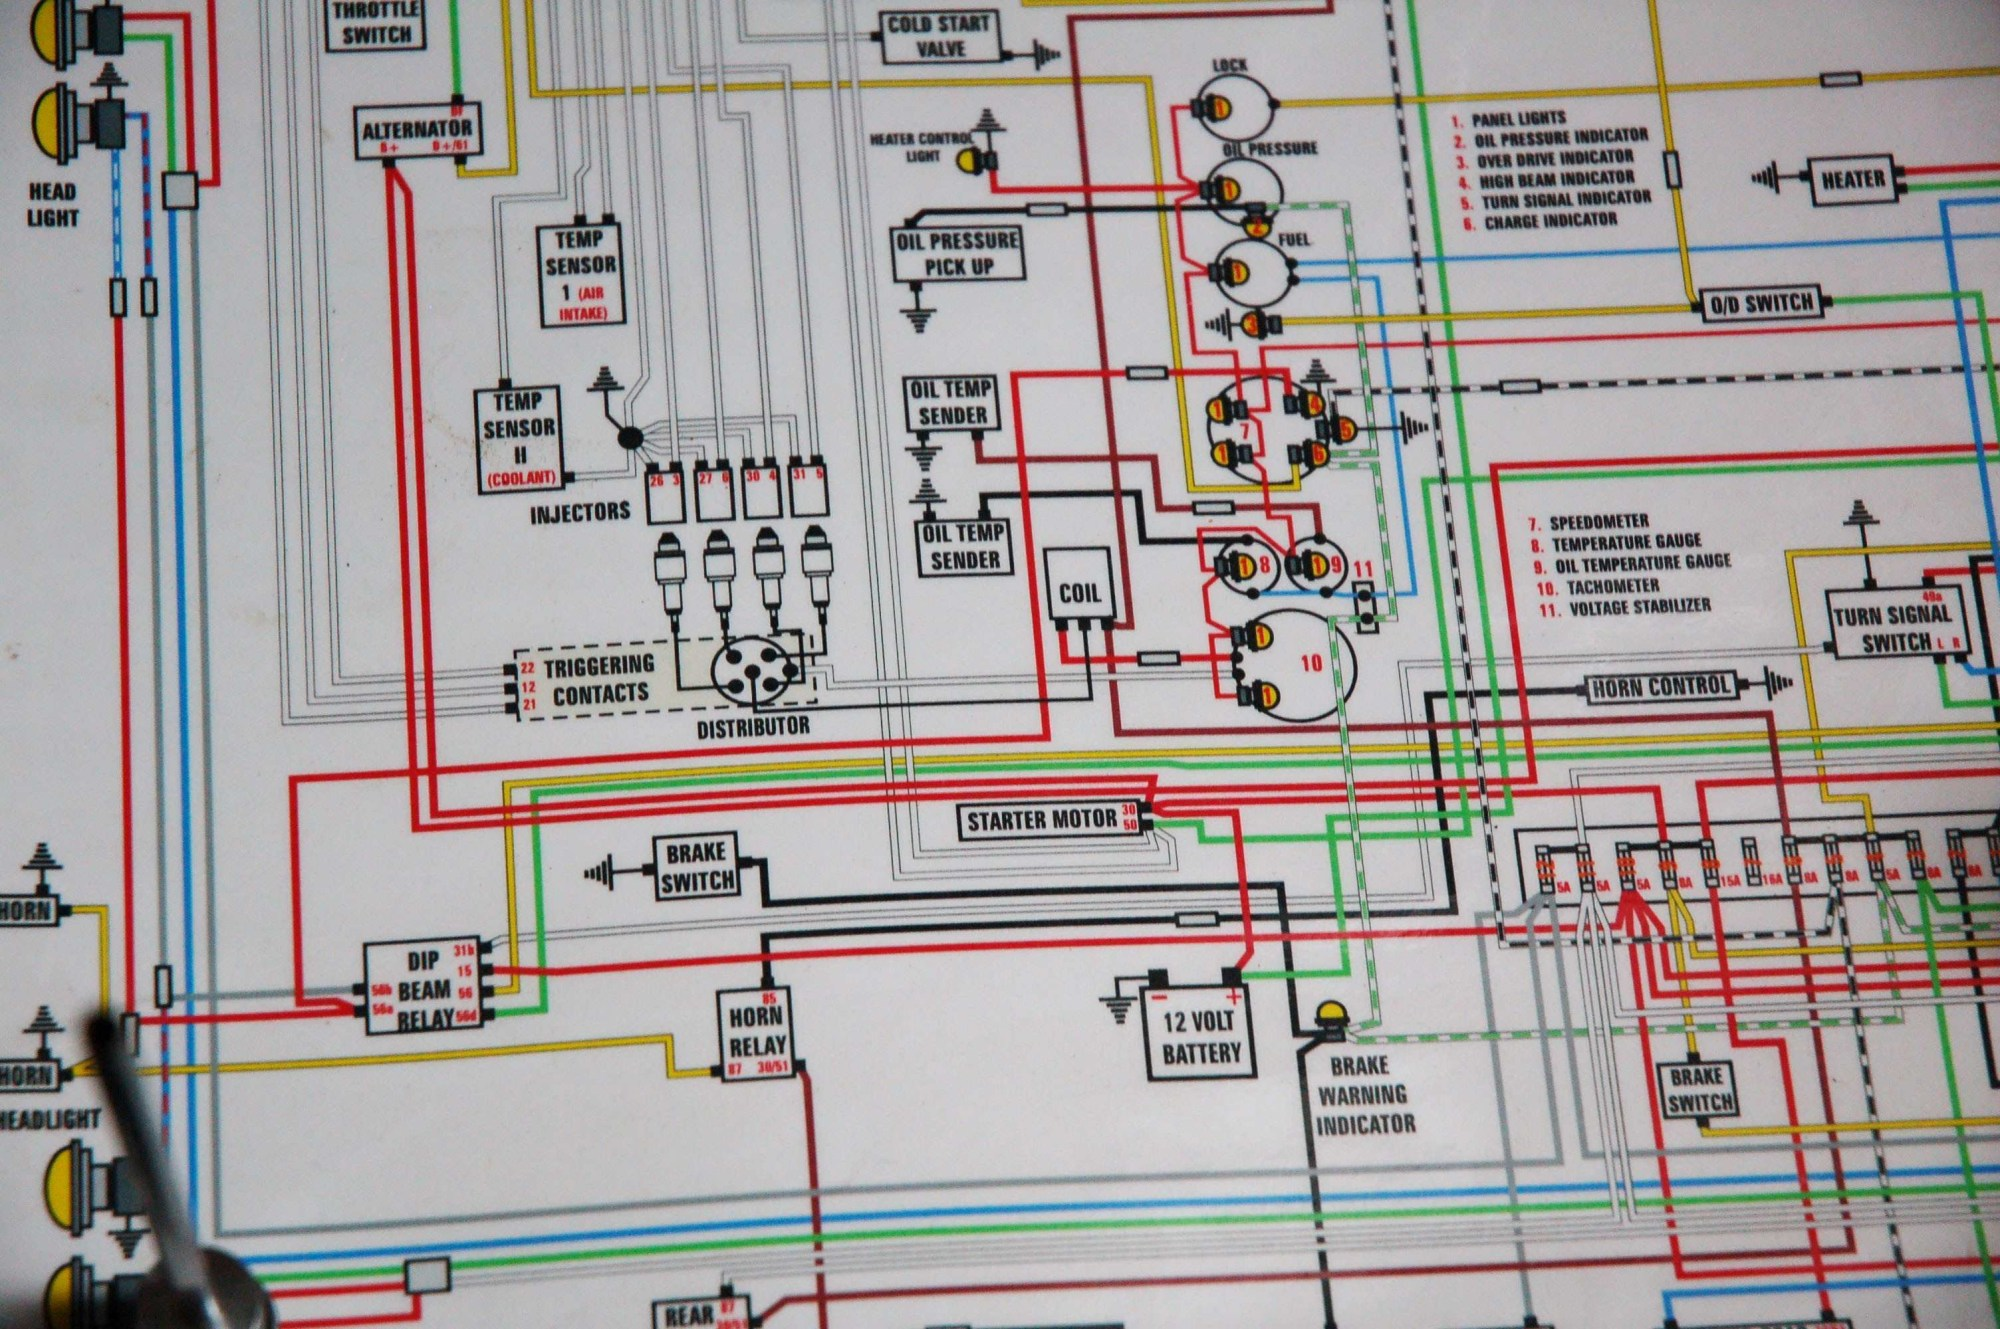 hight resolution of painless wiring switch panel diagram gallery 120v electrical switch wiring diagrams 120v electrical switch wiring diagrams